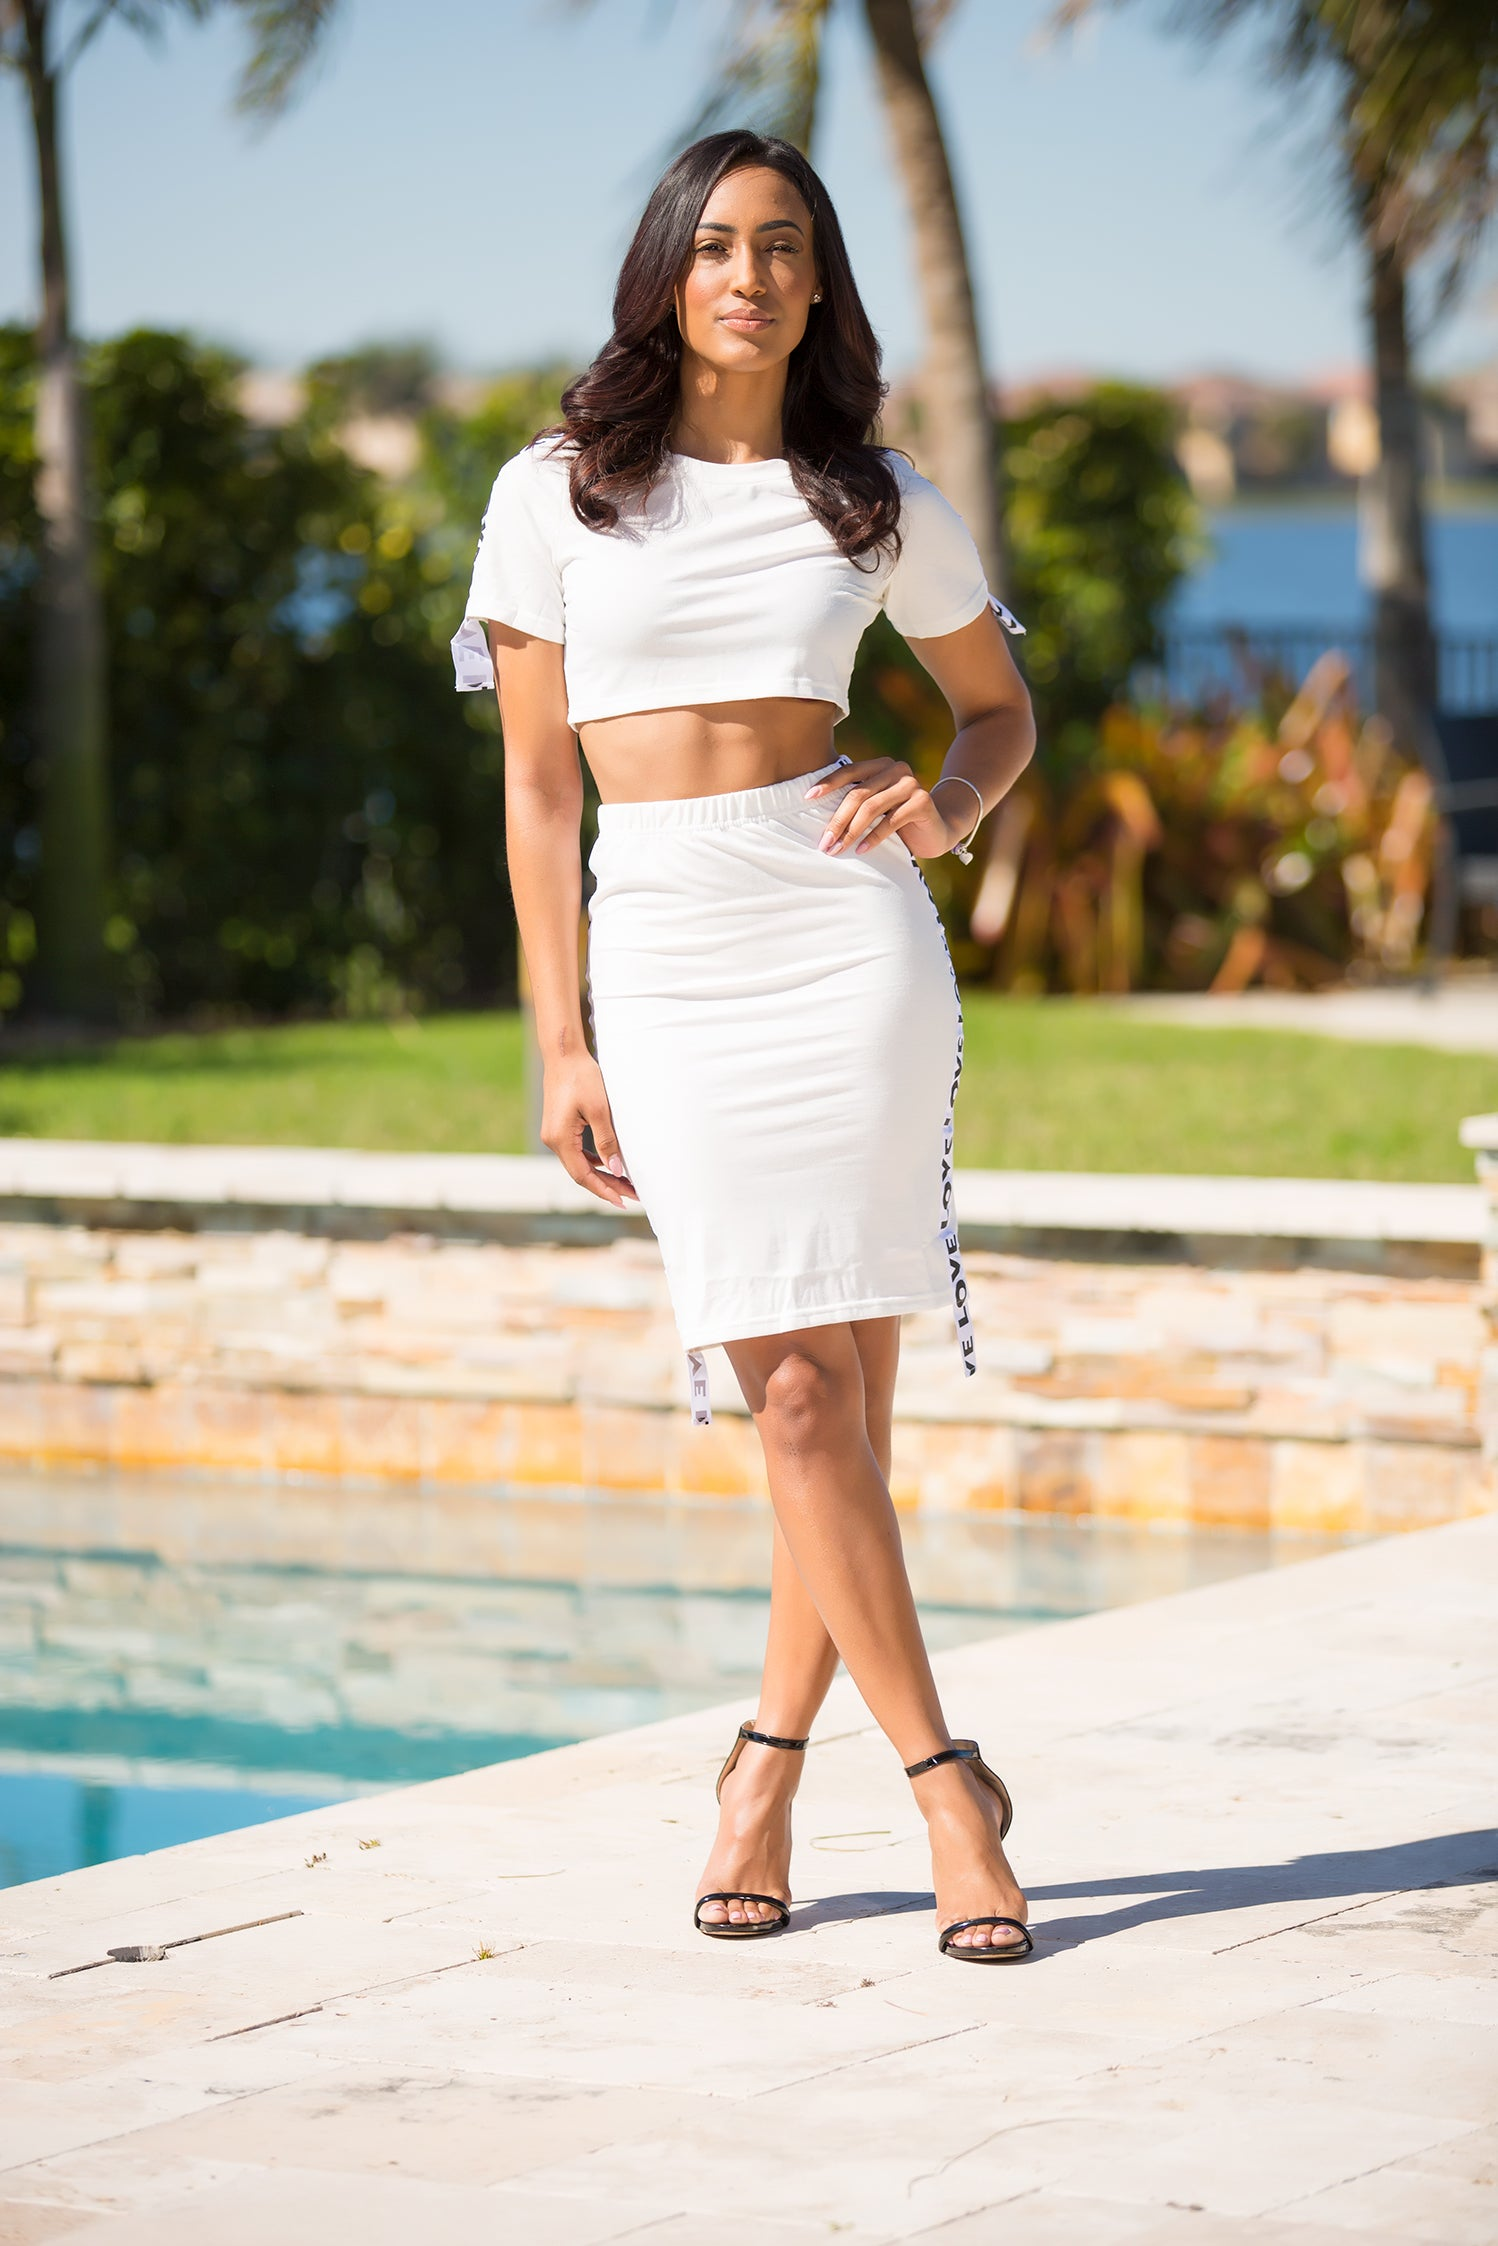 Selma - Nothing But Love Skirt Set - Semai House Of fashion